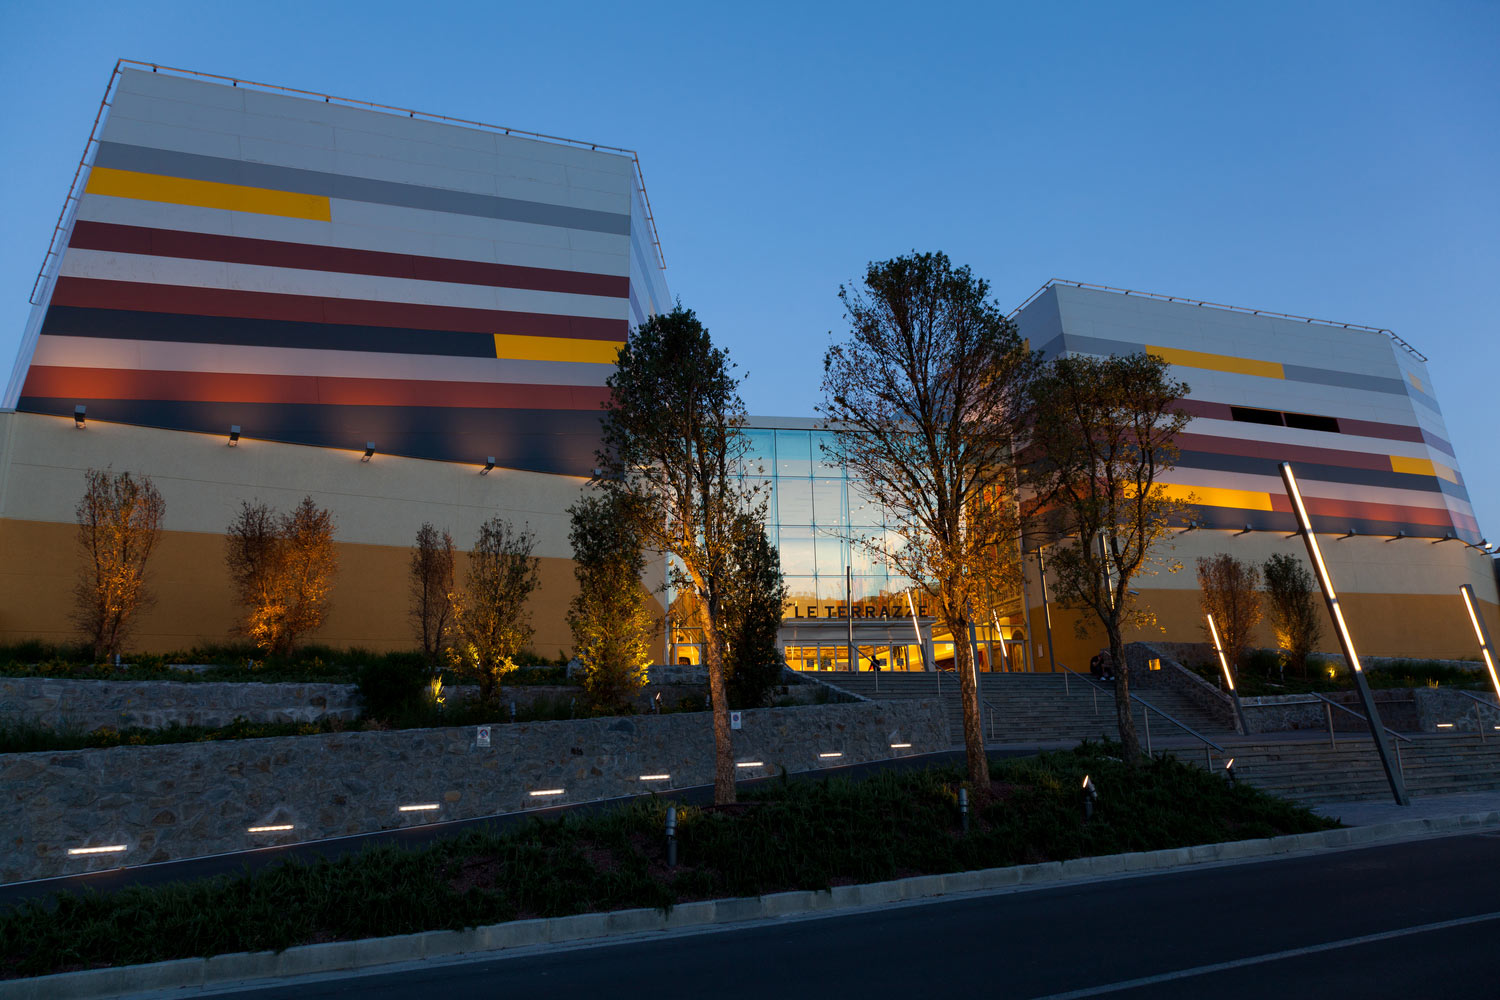 retail broadway malyan le terrazze la spezia italy nbsp retail and leisure centre designed with reference to